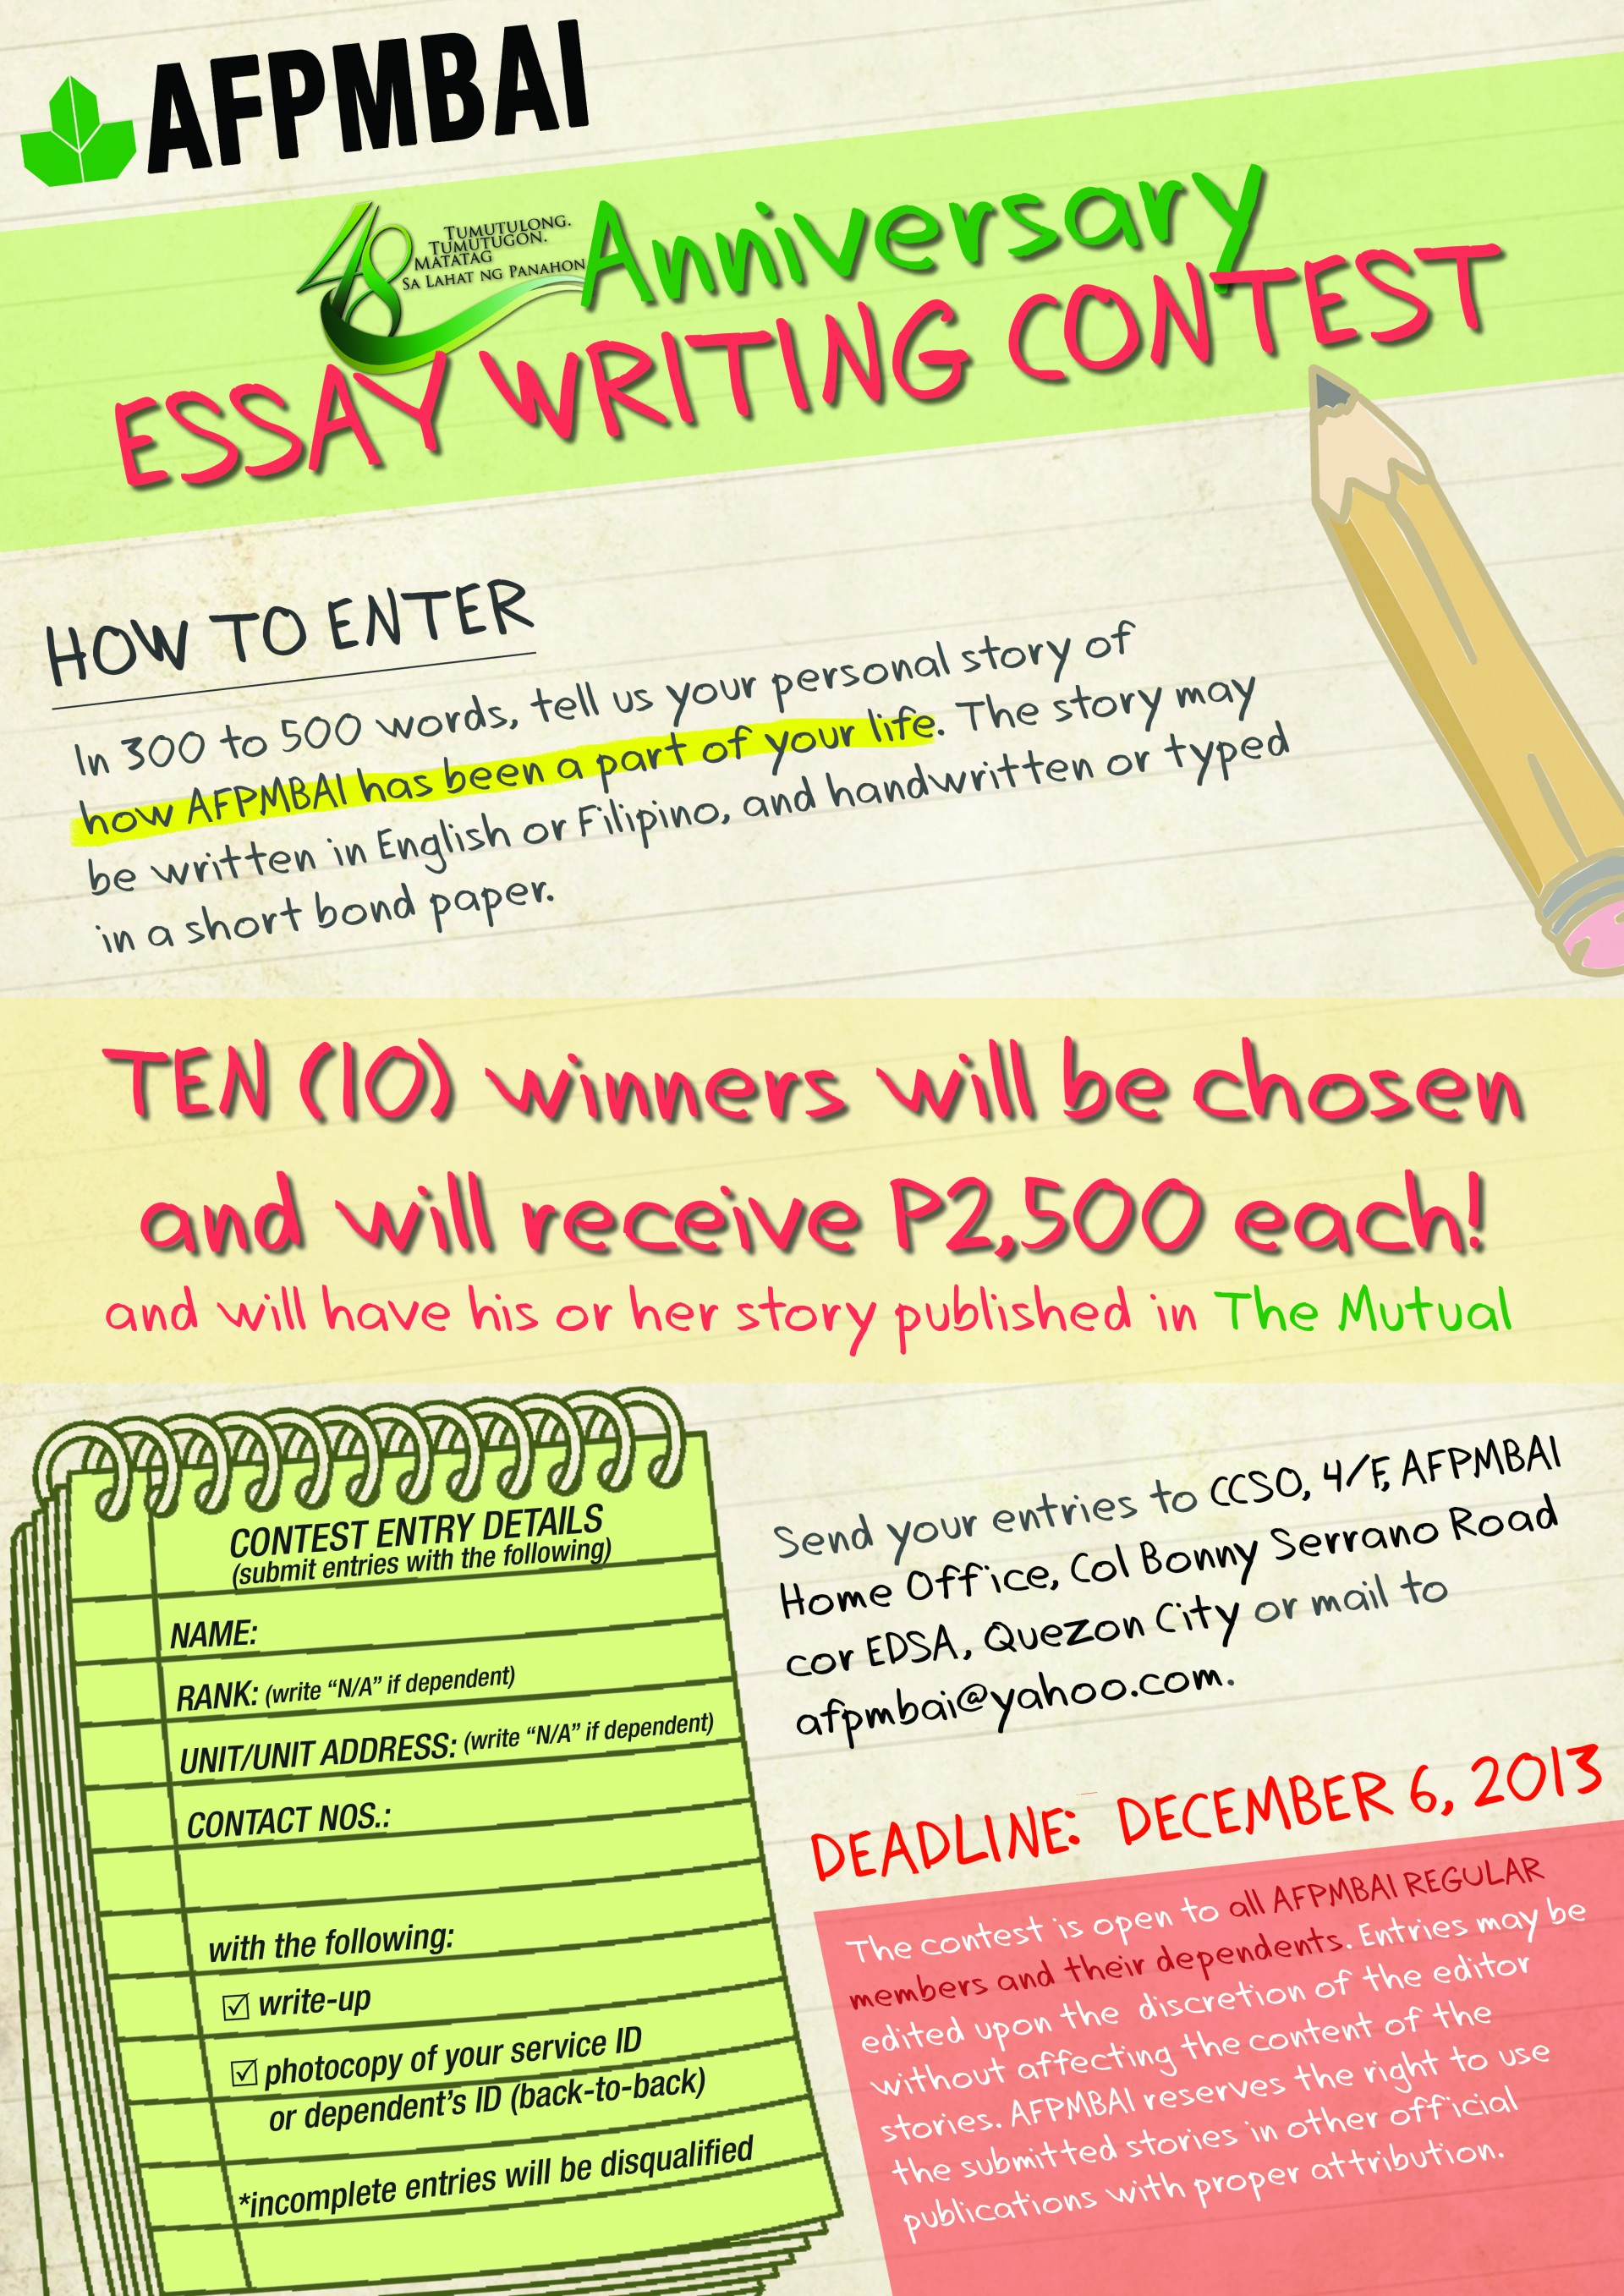 003 Essay Example Writing Contest Competition Essays About For Nutrition Month P Objectives Rubrics Philippines Mechanics Criteria Tips Incredible International Competitions High School Students Rules By Essayhub 1920